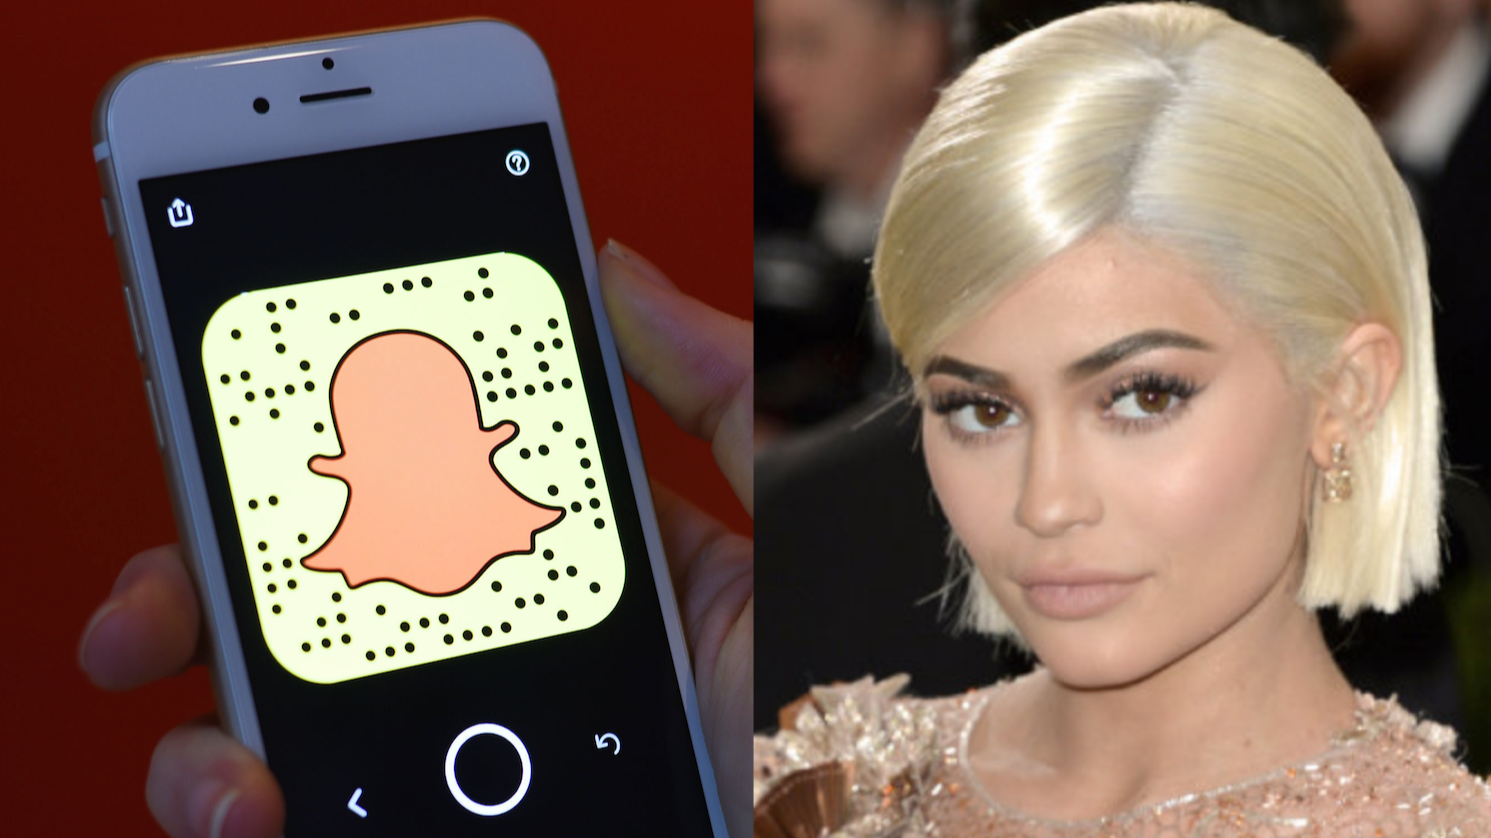 Facebook Share Price Rise Following Kylie Jenner Snapchat Tweet